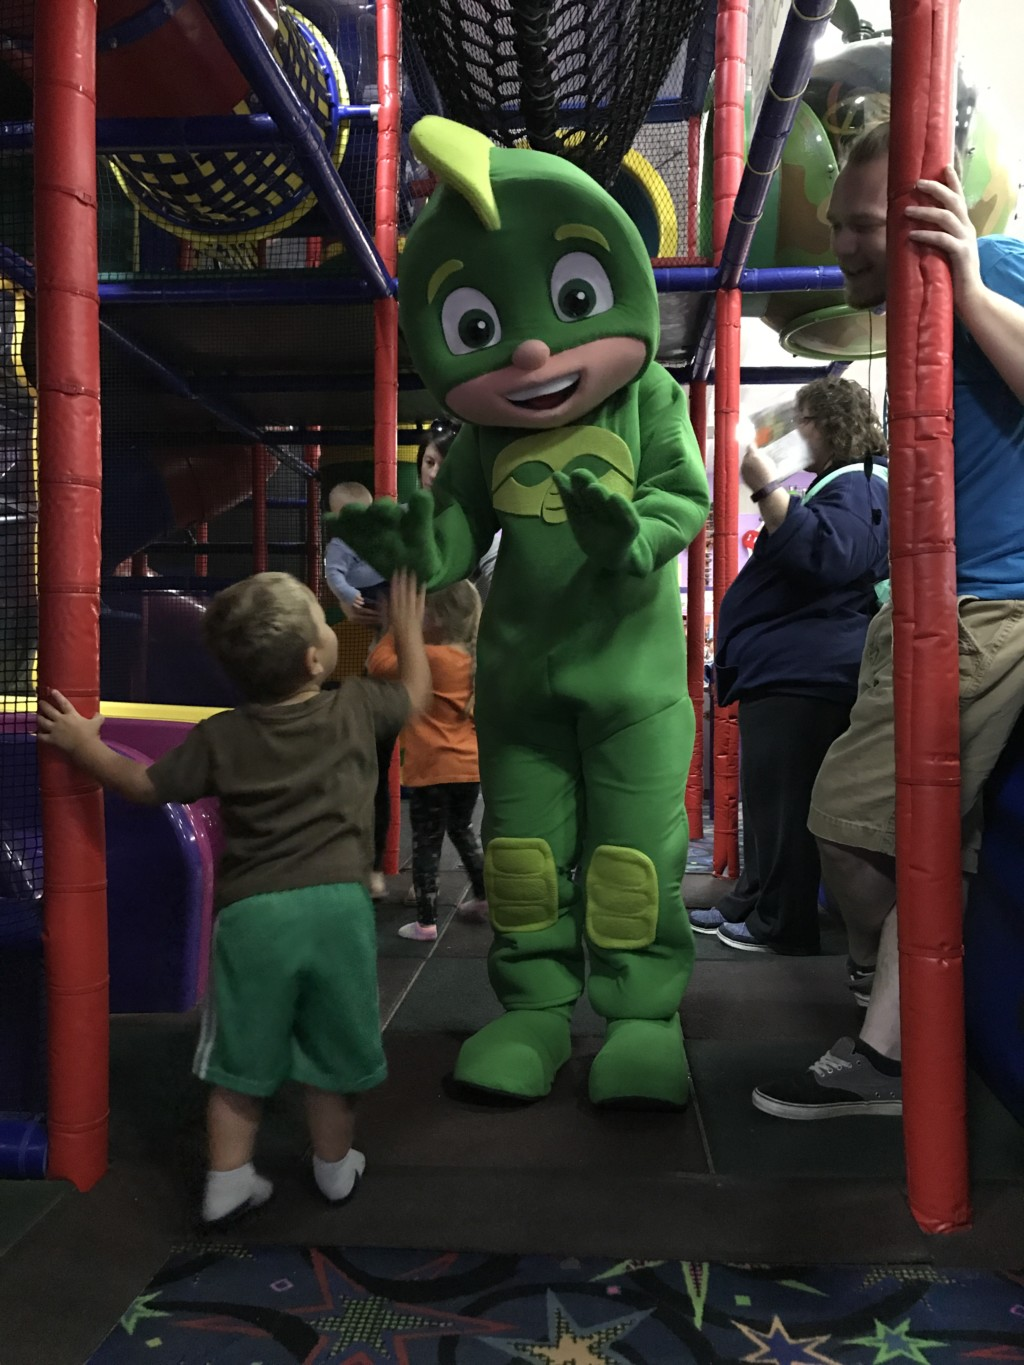 Small child high-fiving cartoon actor